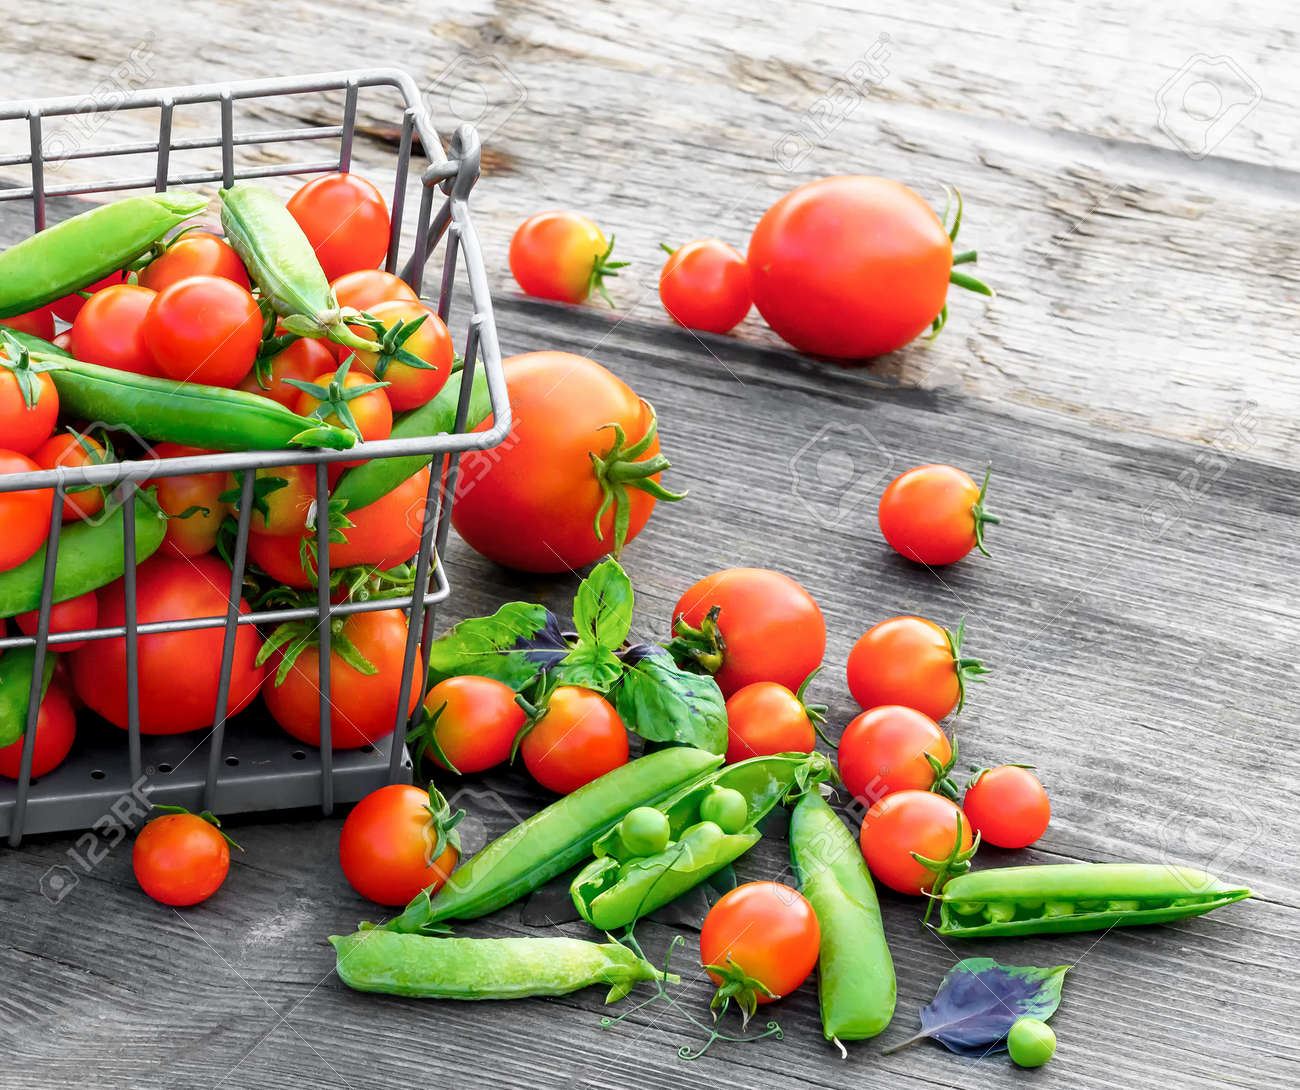 Tomatoes and green peas in metal basket on wooden rustik table. - 172473095